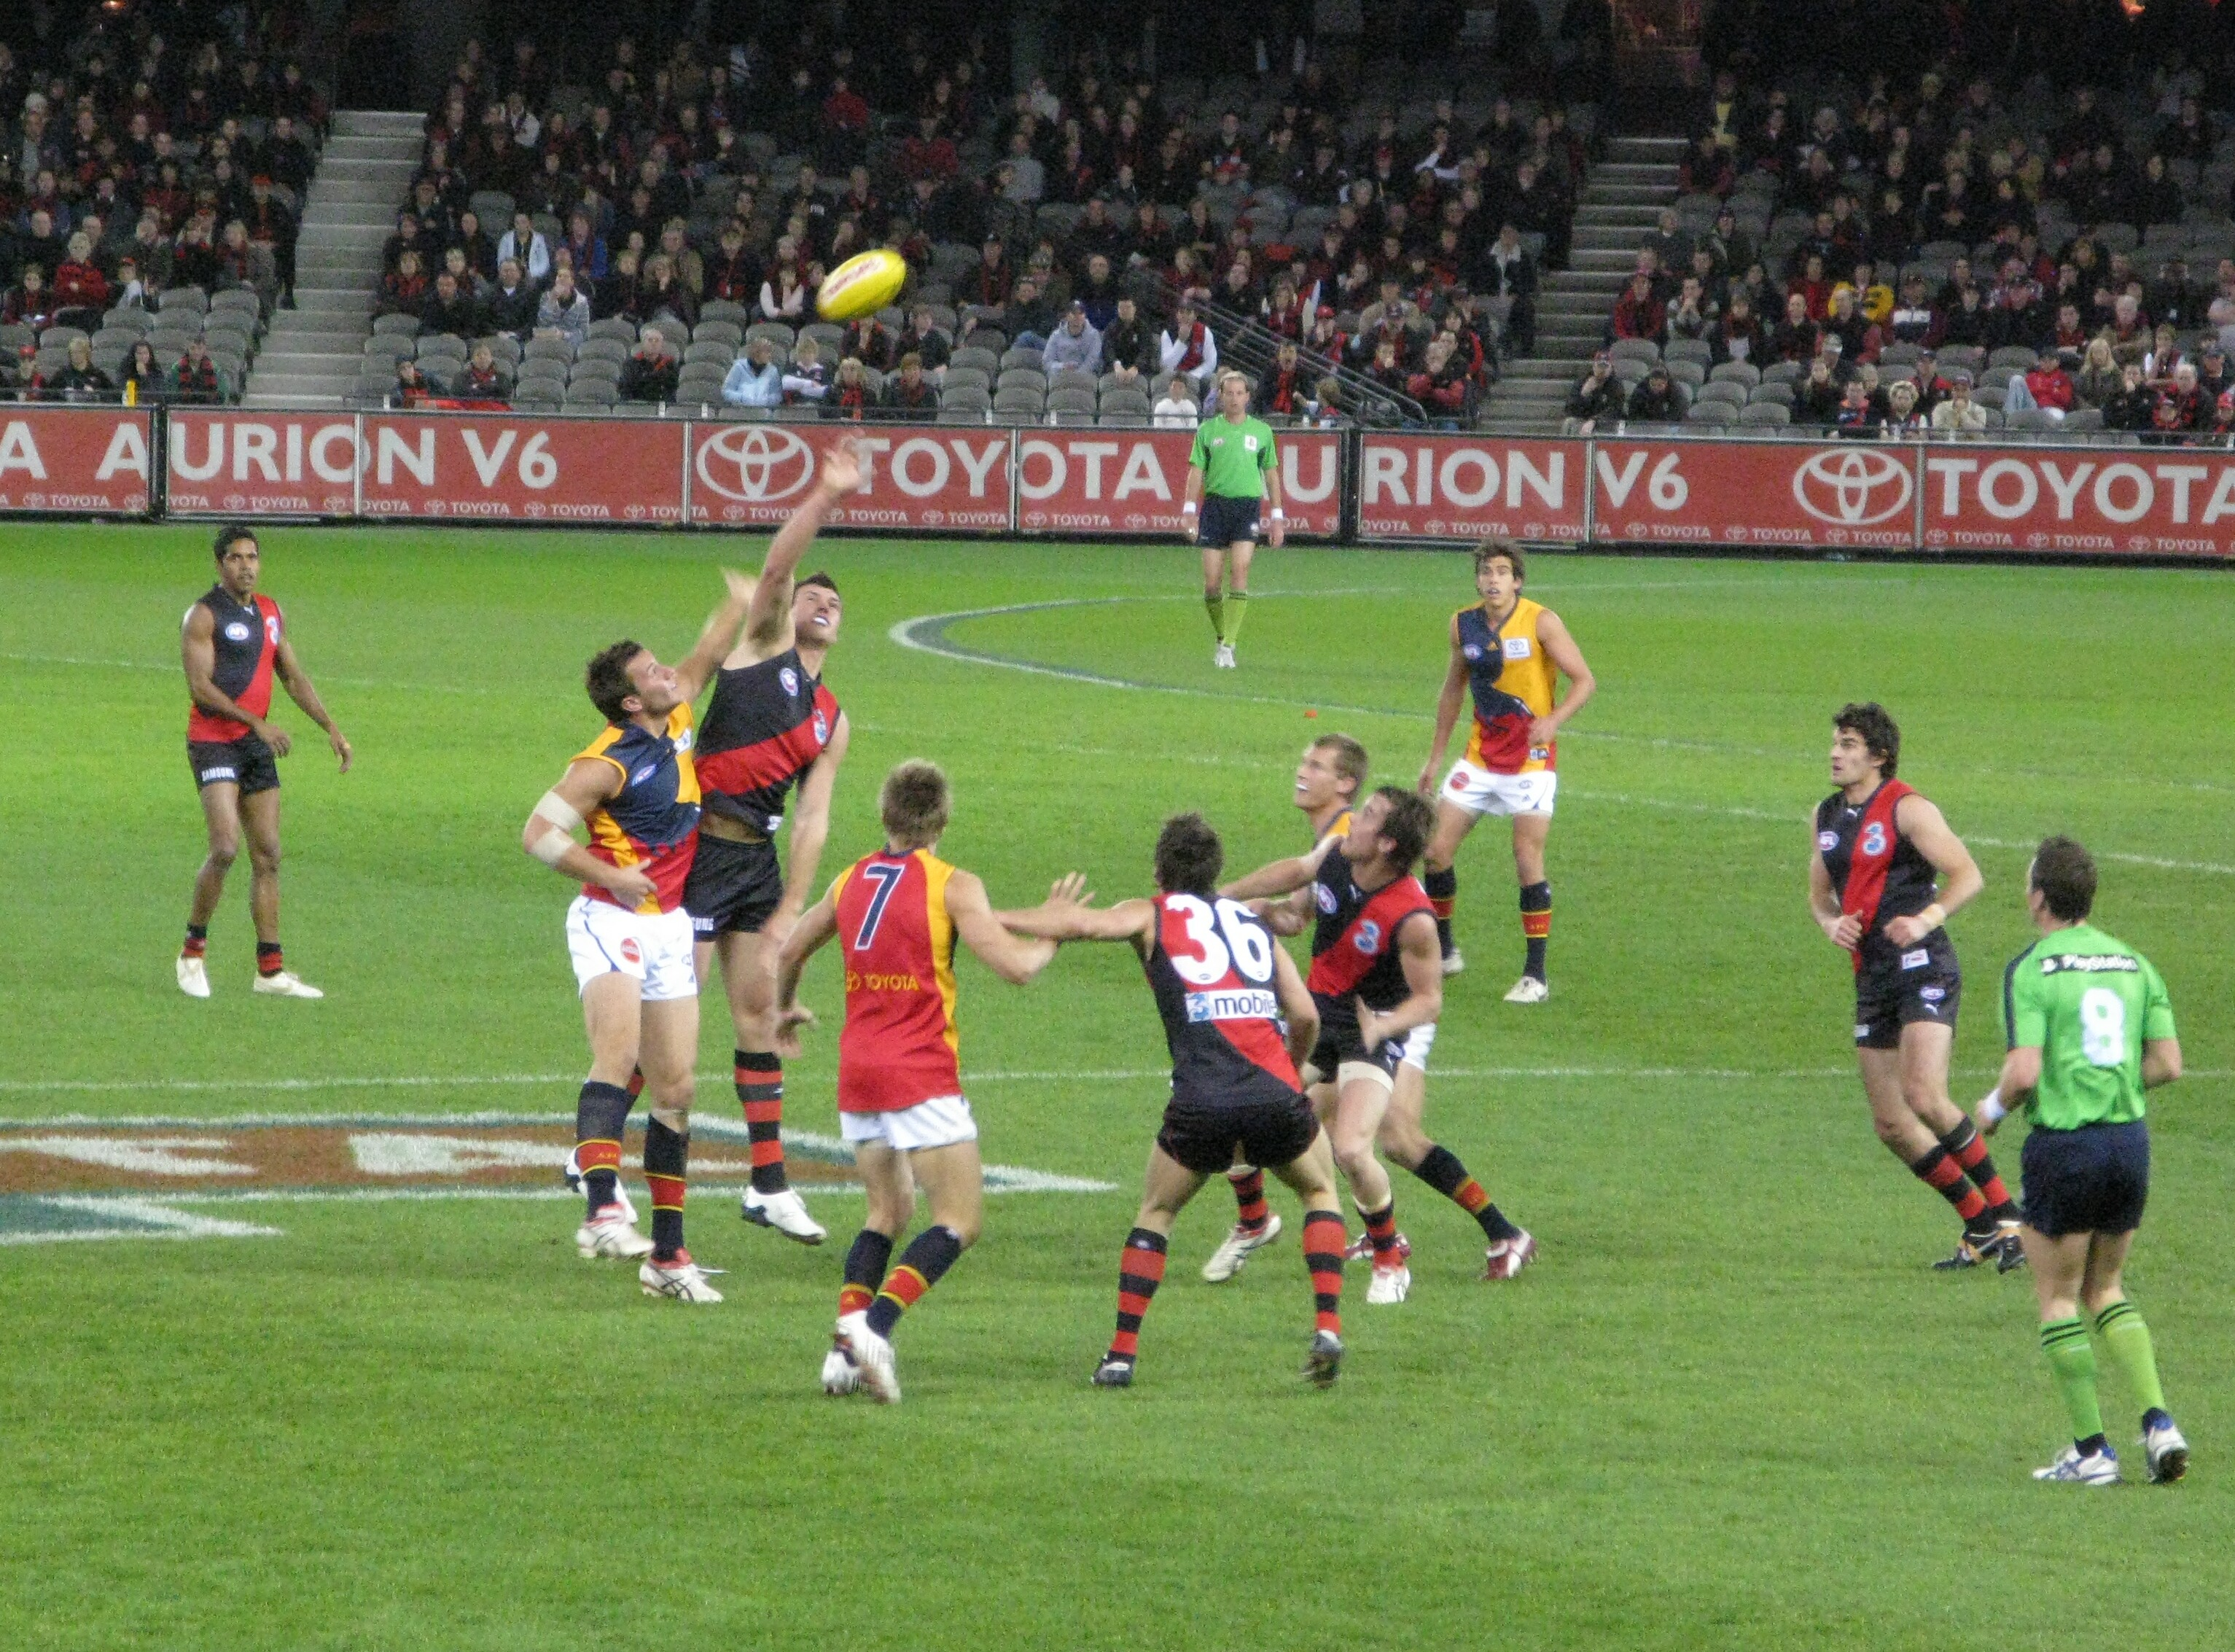 Description afl match between essendon (red and black) and adelaide